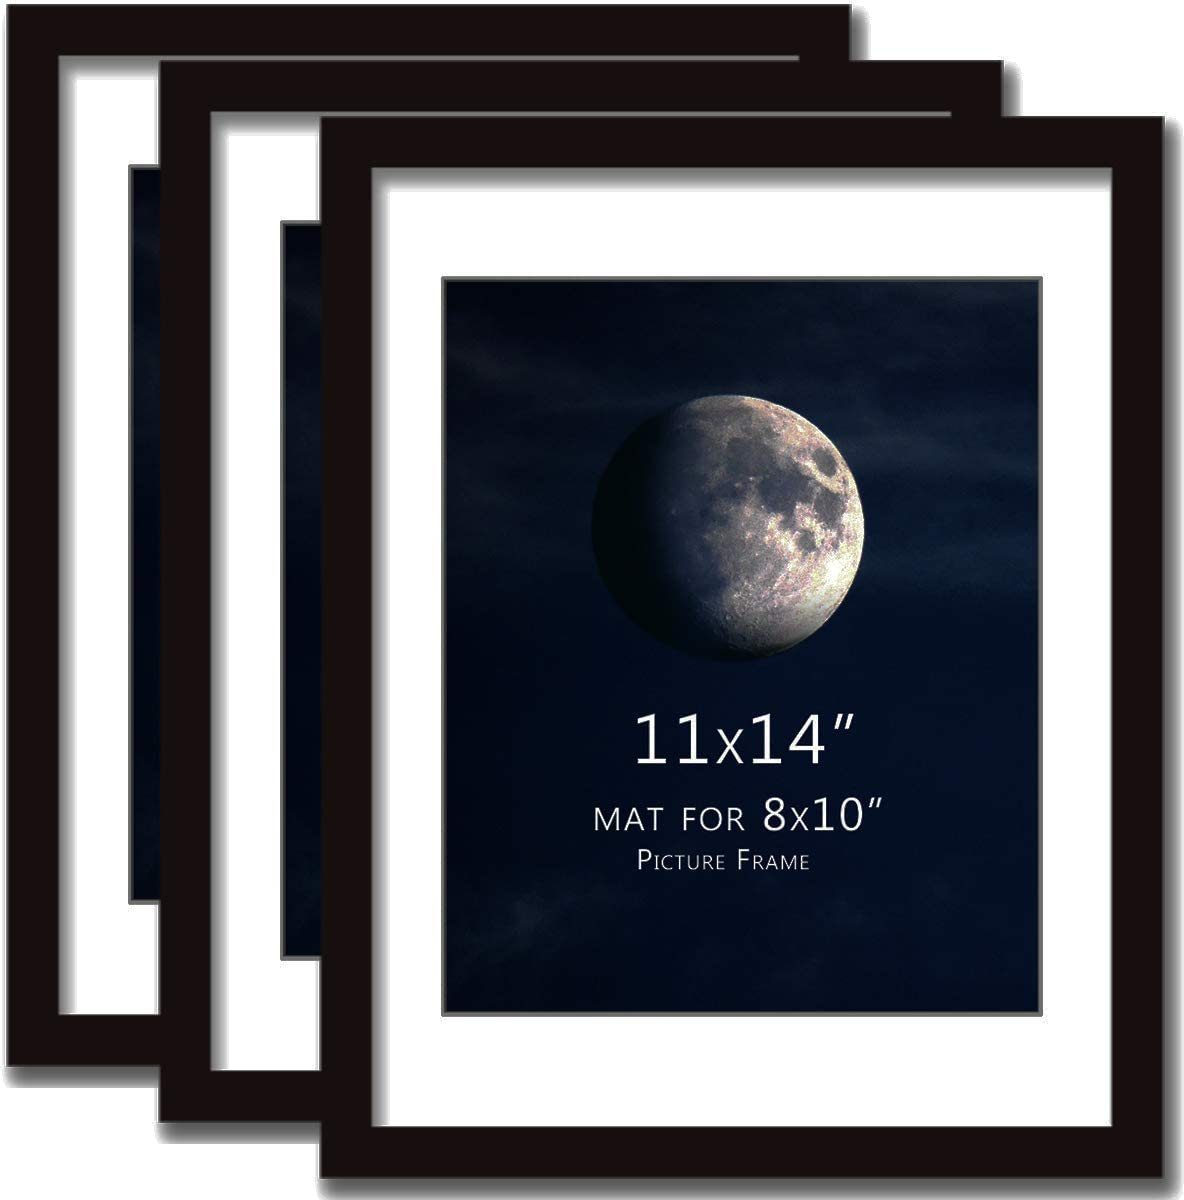 Plexiglass 11x14 Frame Black(3 Pack) Solid Wood with MAT for 8x10in Document Poster Photo Picture Frames 14x11 Desktop Table and Wall Mounting